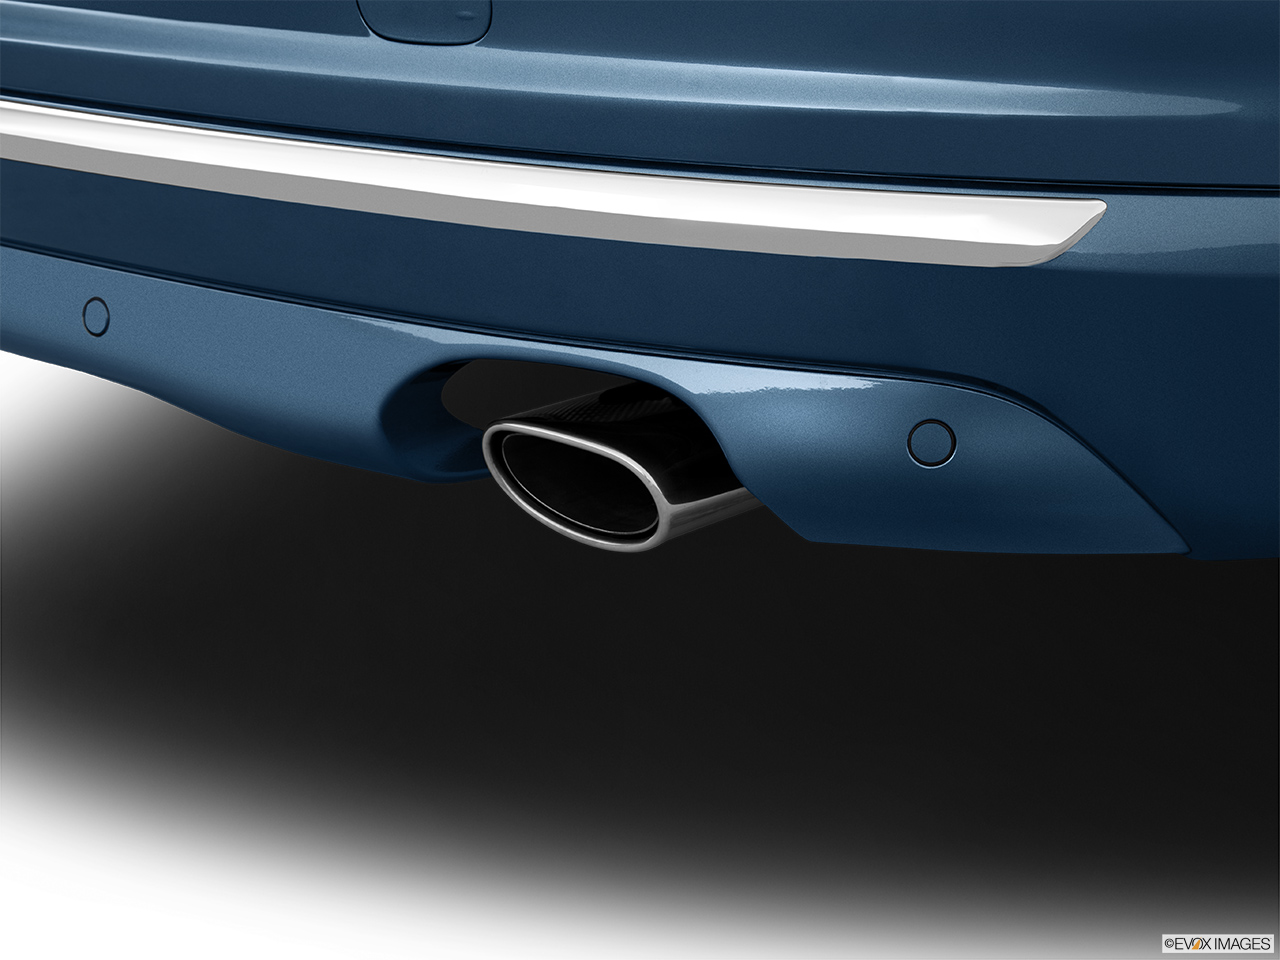 2014 Volvo S80 T6 AWD Platinum Chrome tip exhaust pipe.